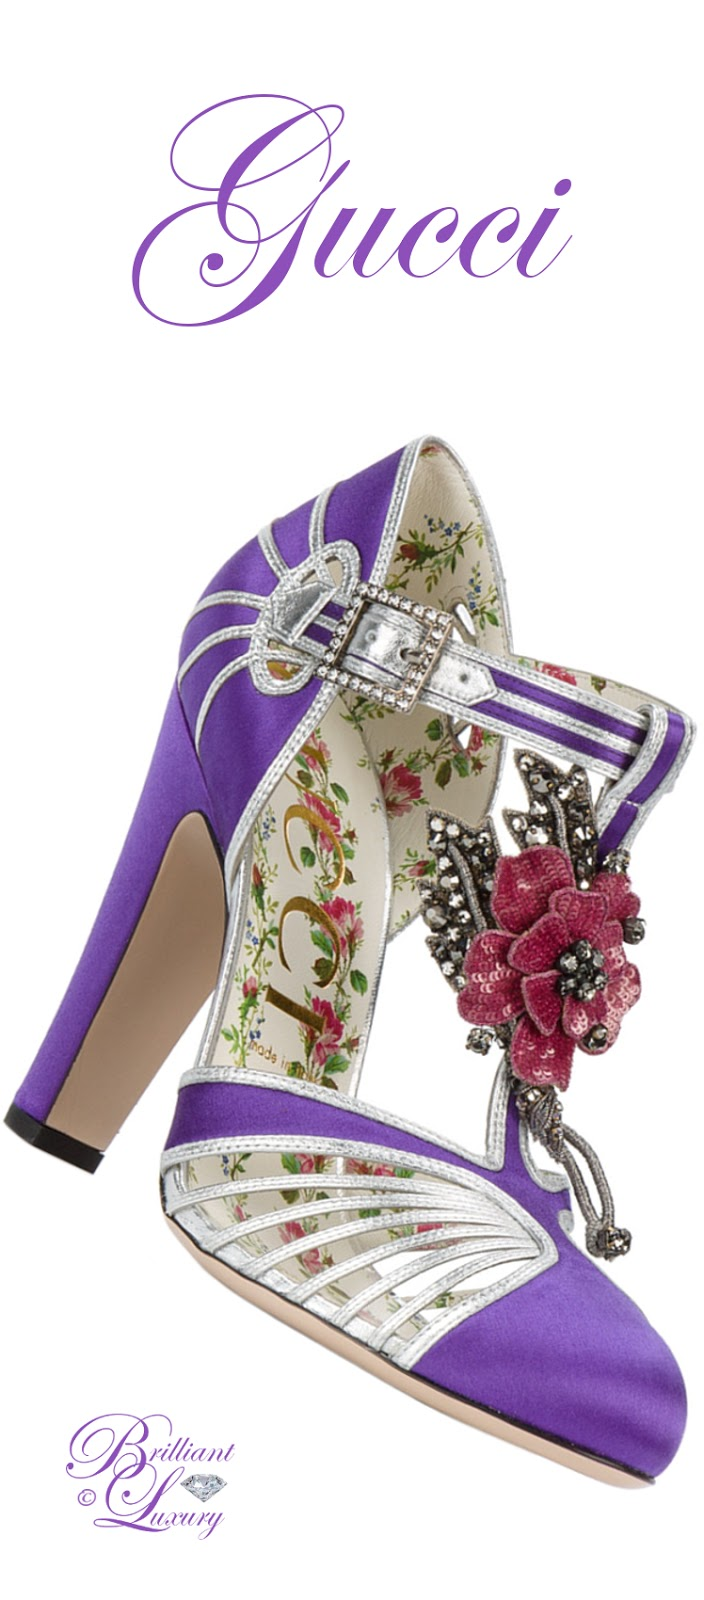 Brilliant Luxury ♦ Gucci T-Strap Floral Applique Pumps